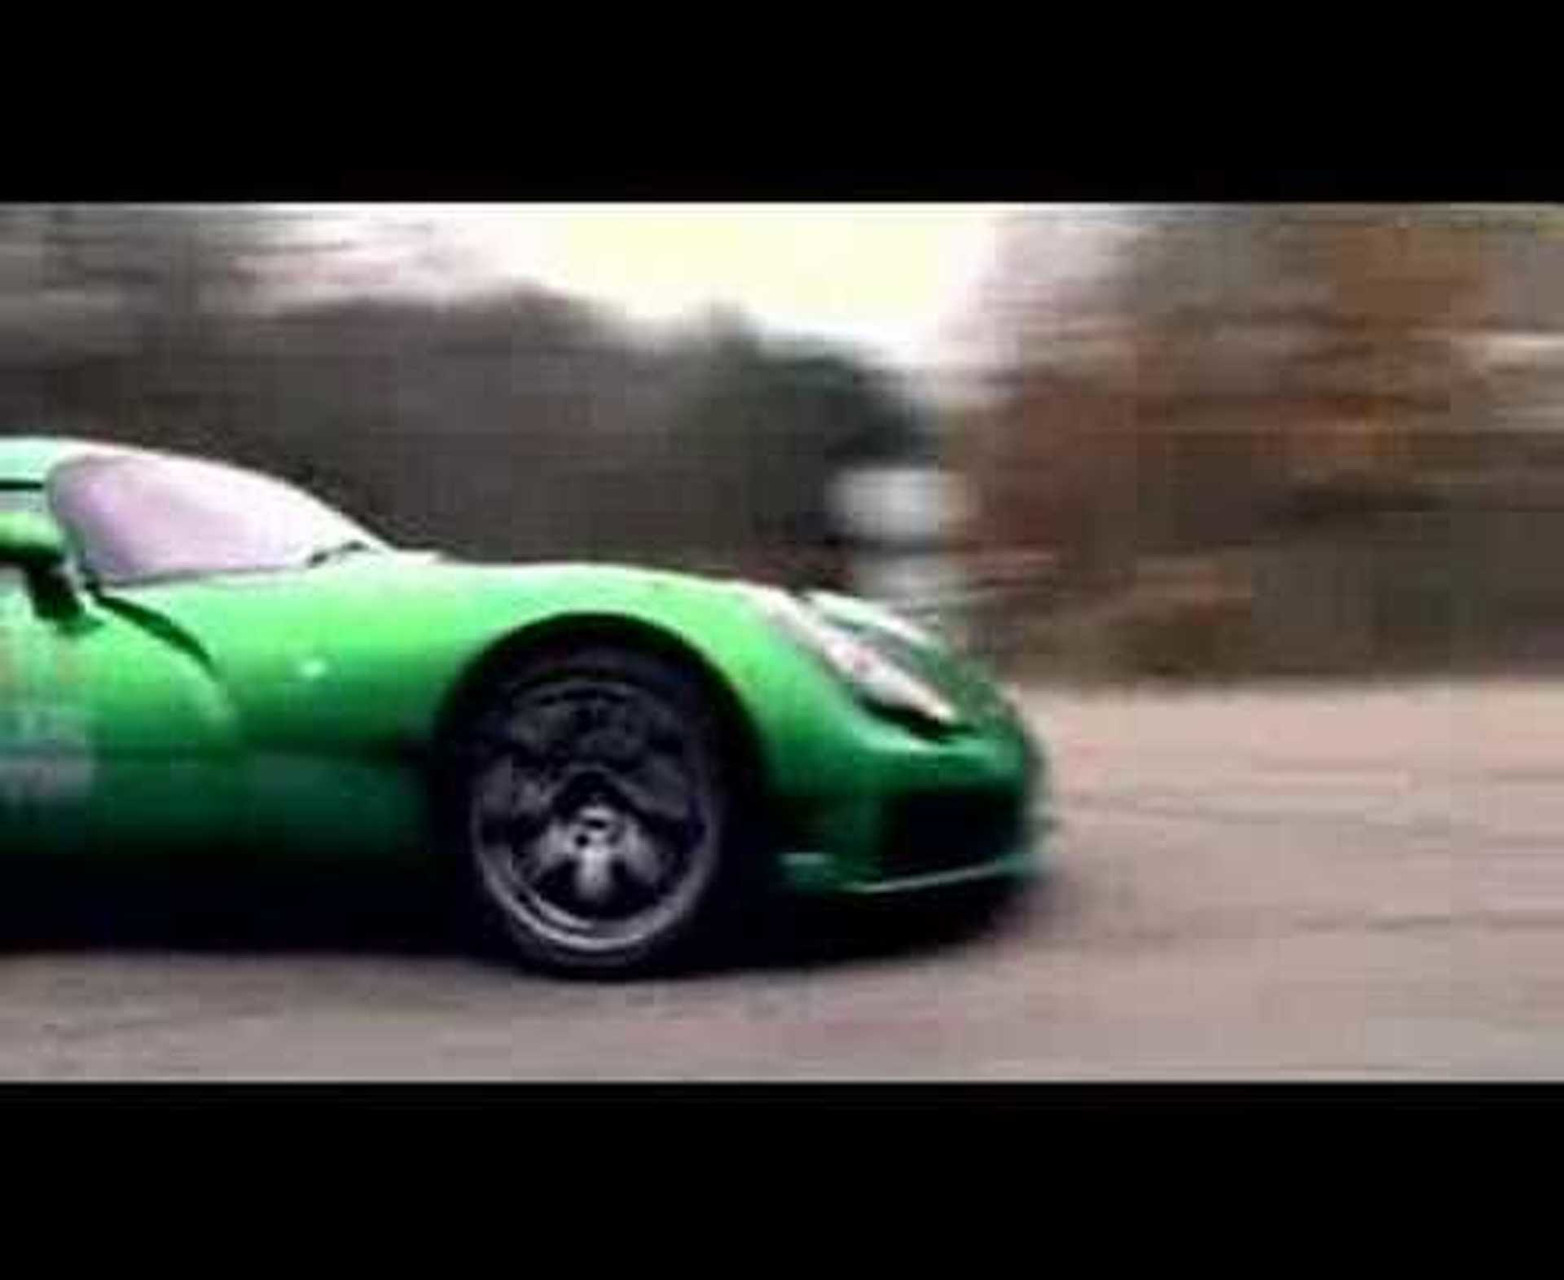 2006 TVR Sagaris - Commercial